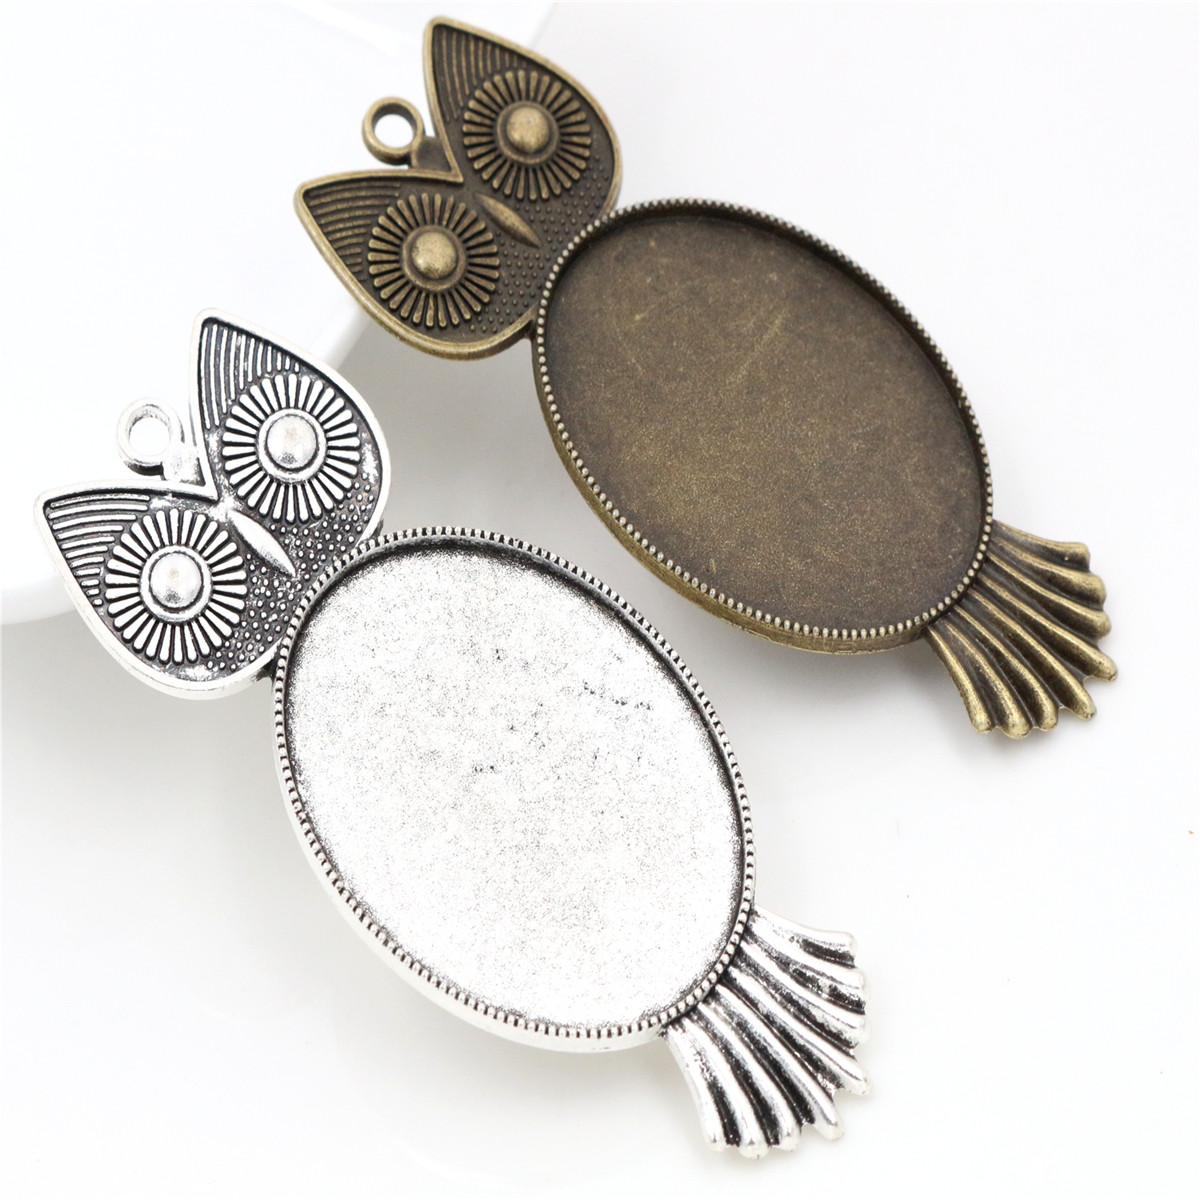 5pcs/lot 30x40mm Inner Size Antique Silver Plated And Bronze Owl Style Cabochon Base Setting Charms Pendant Diy Findings